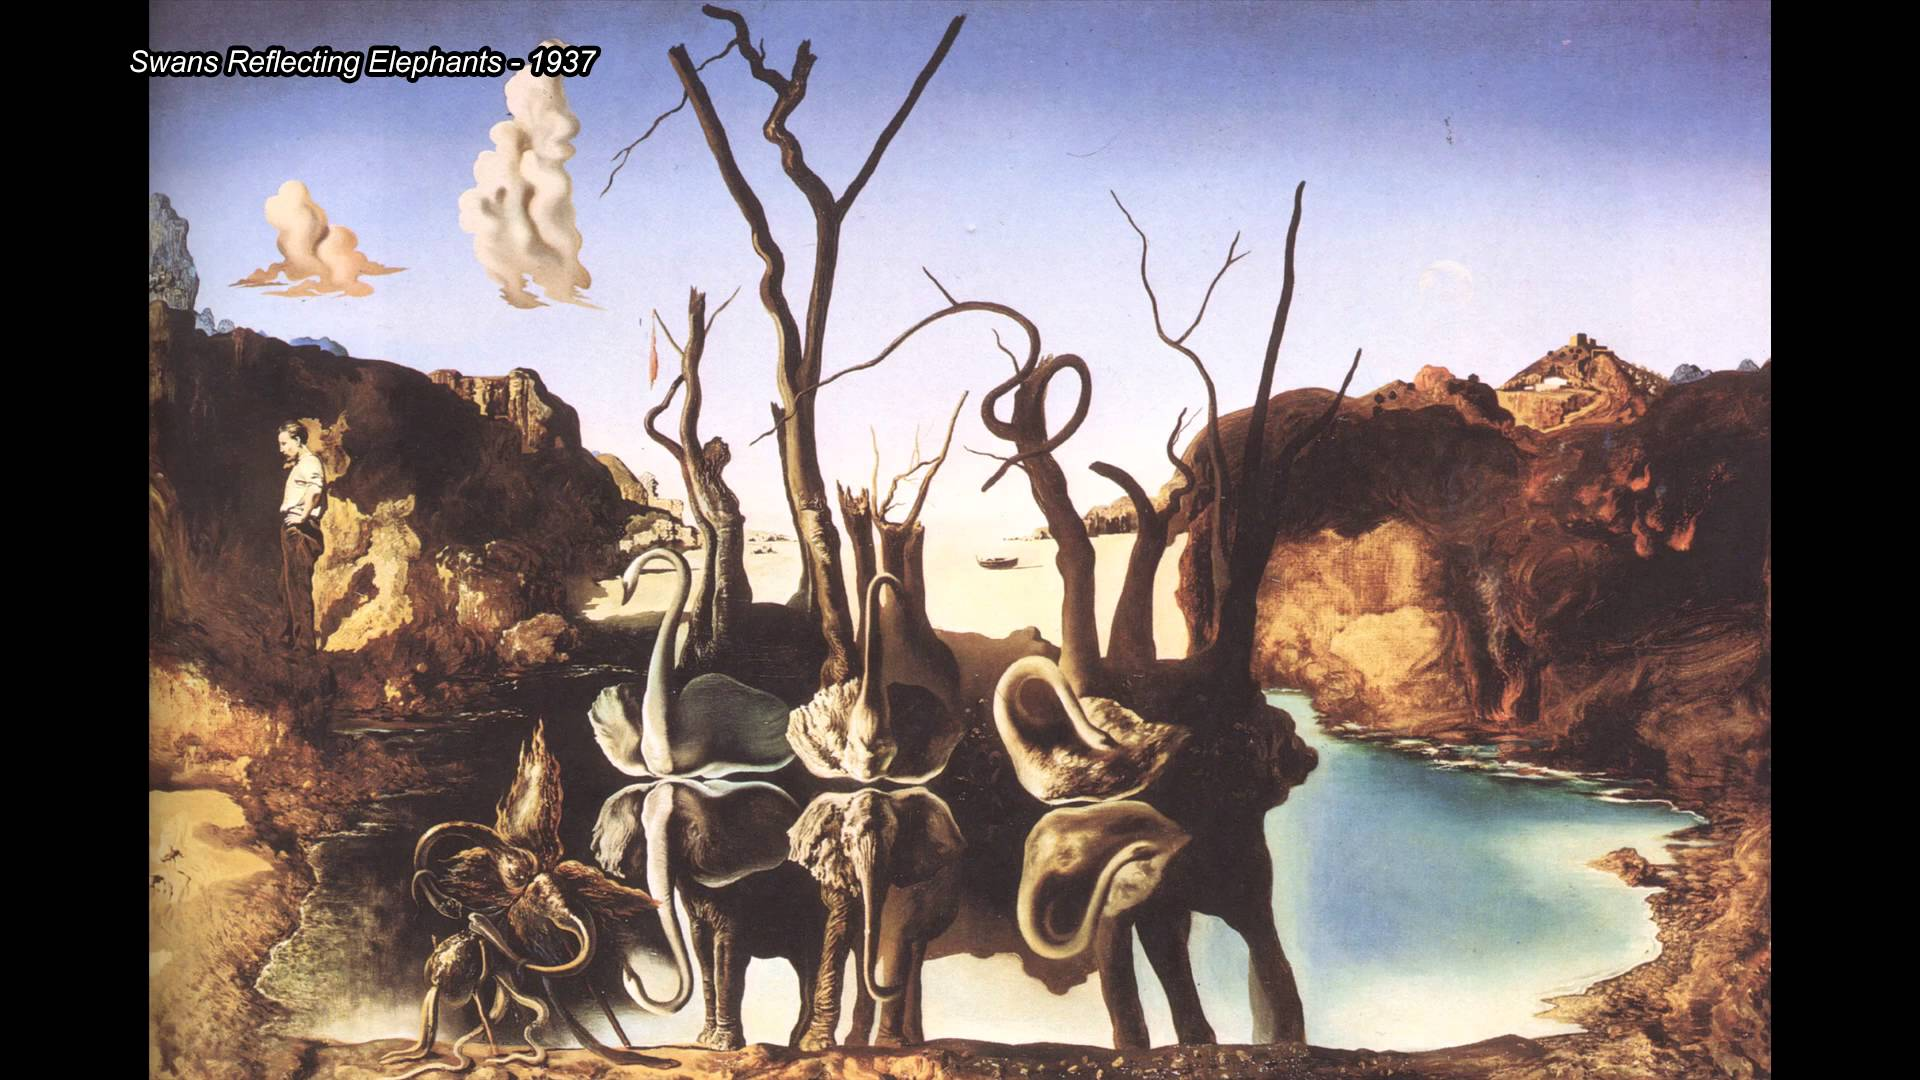 Top 10 Salvador Dalí Paintings - YouTube